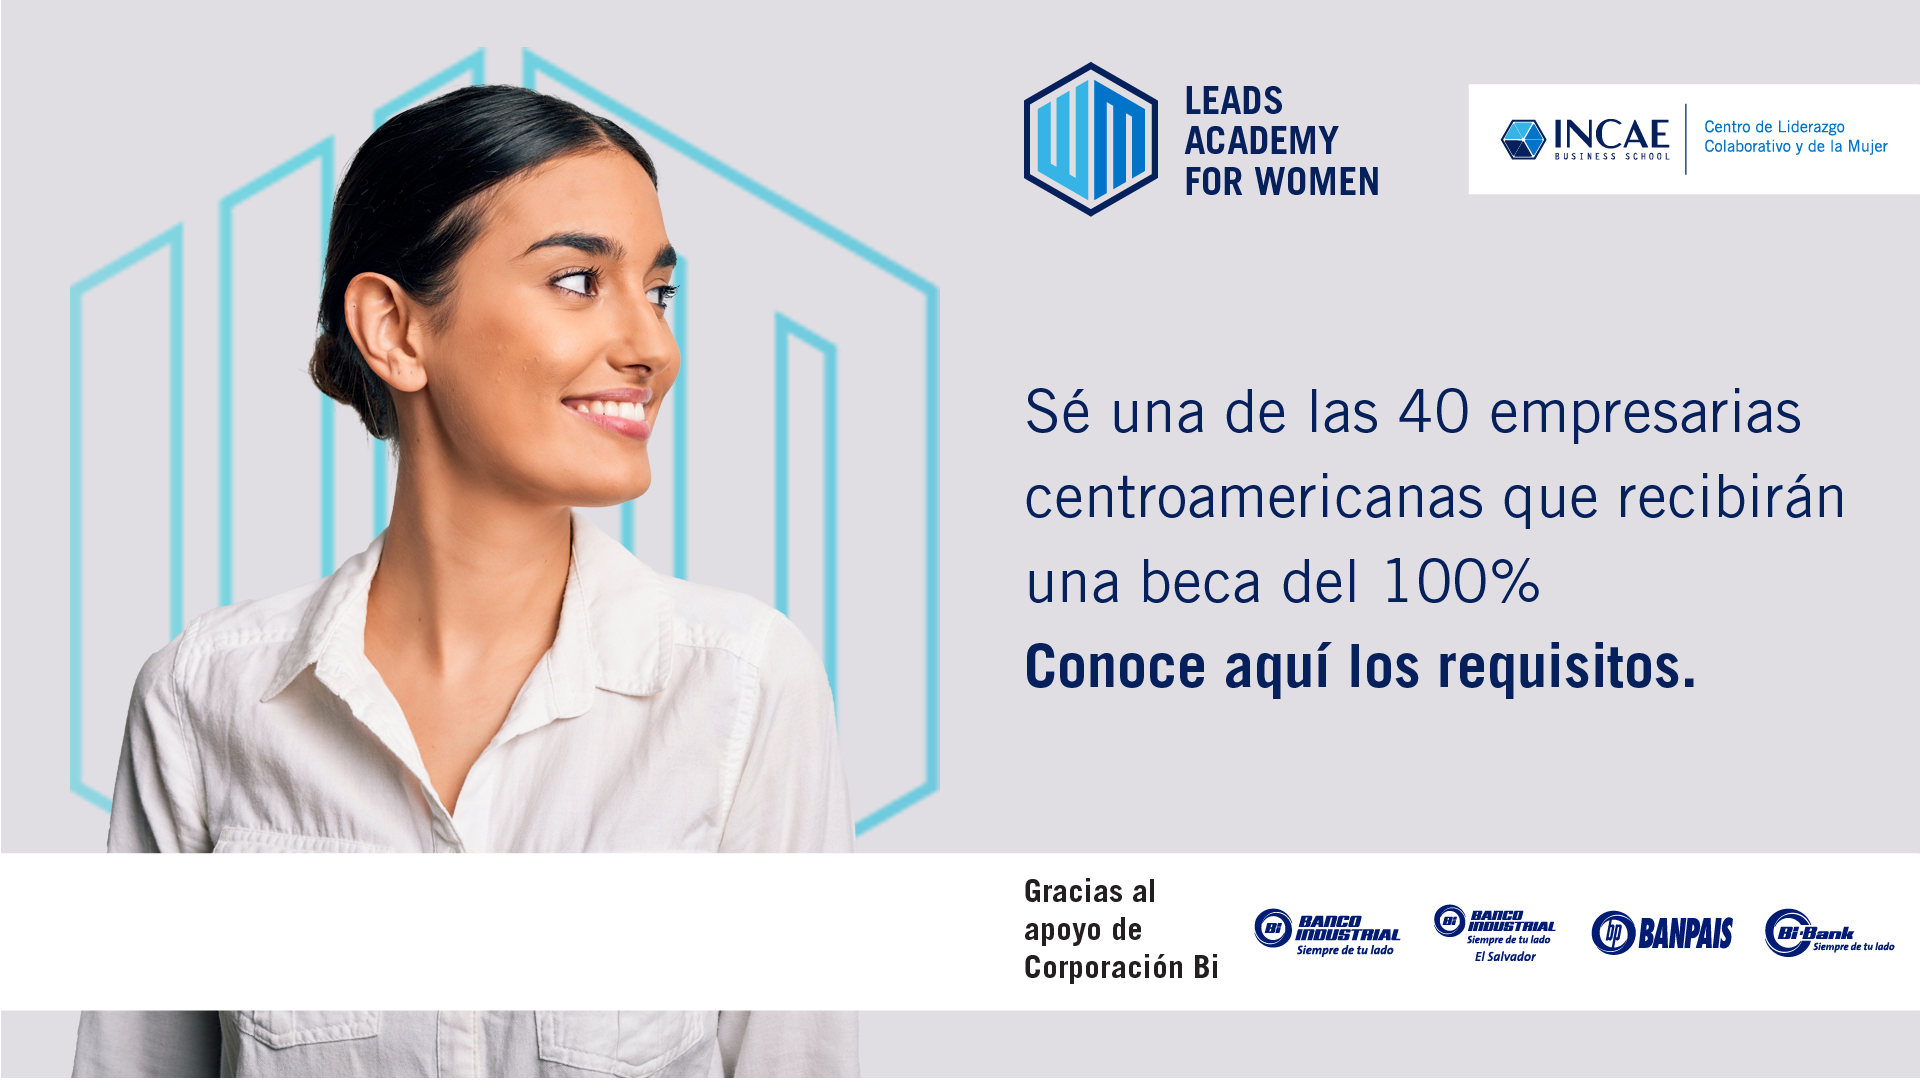 Leads Academy for Women